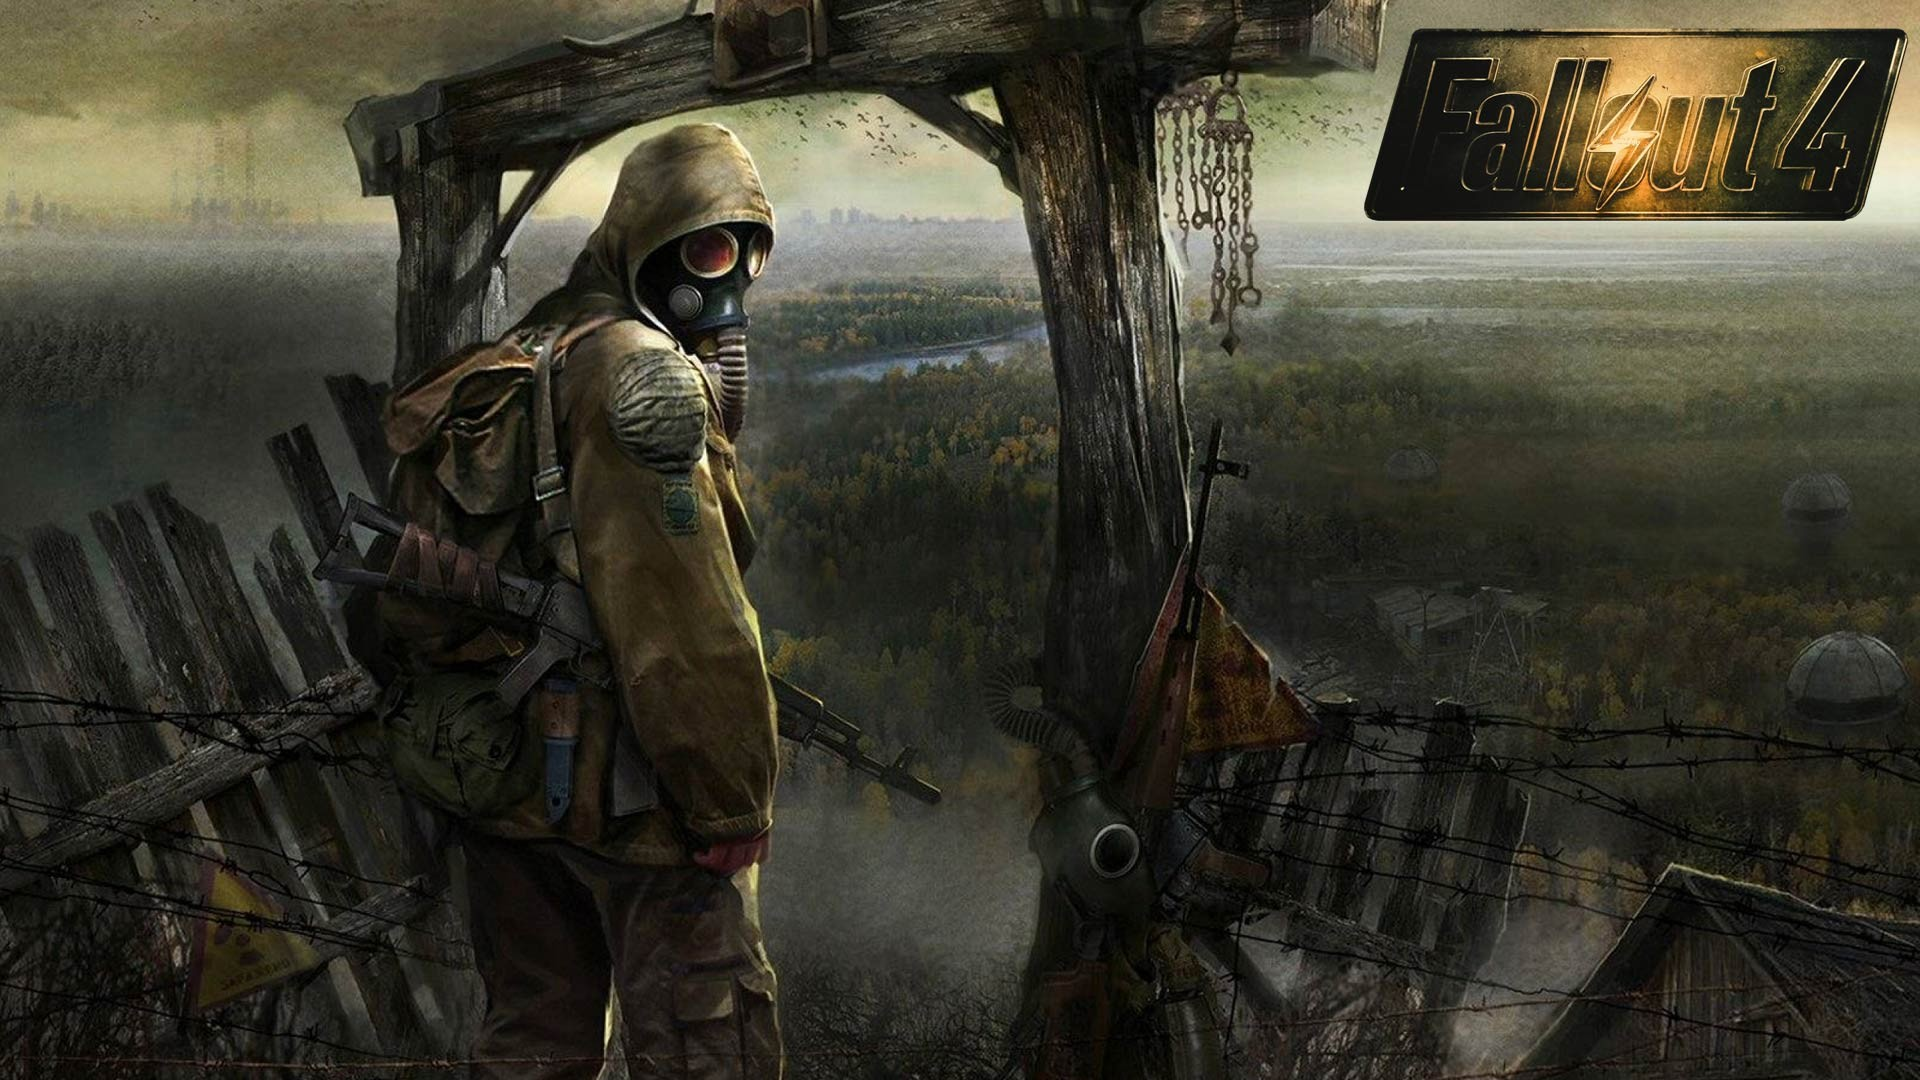 Fallout 4 HD Wallpaper 1 Download Free Cool High Resolution